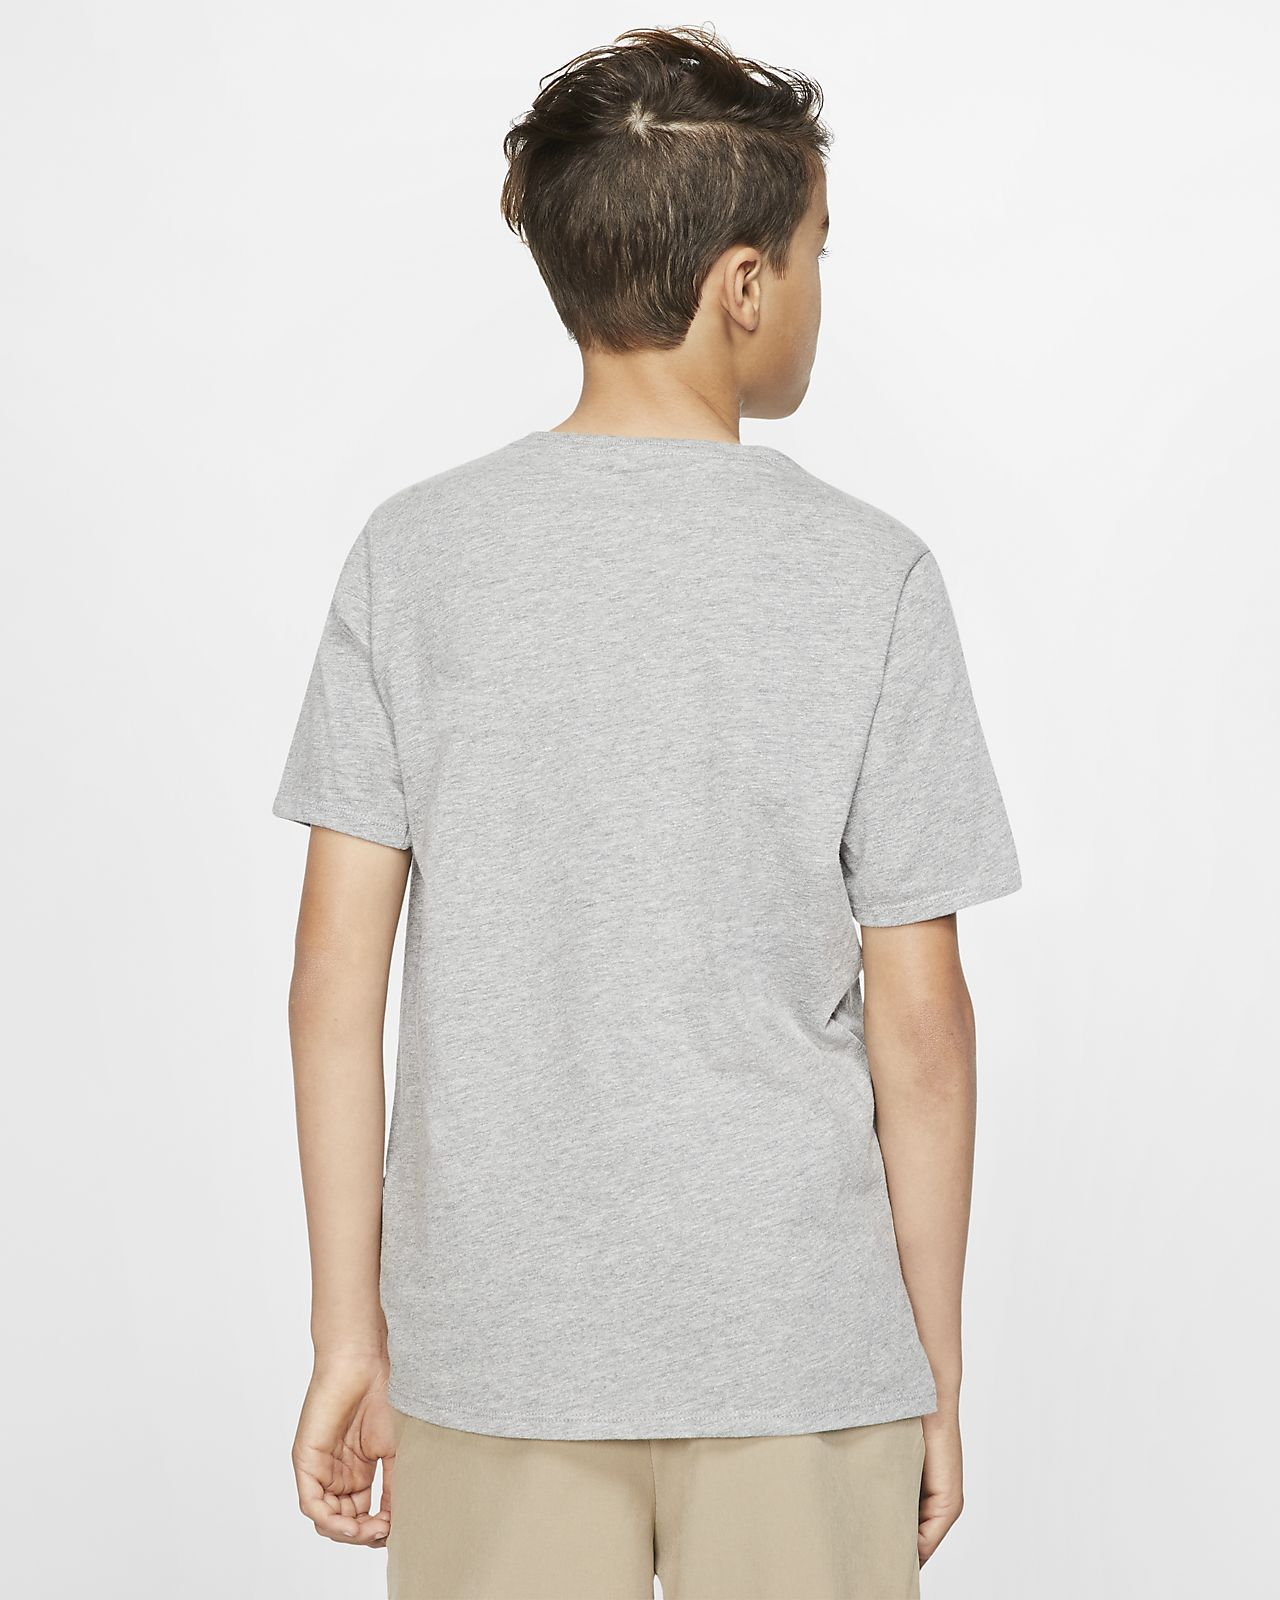 e7bfbd5480fac5 Hurley Premium One And Only Small Box Jungen-T-Shirt. Nike.com LU